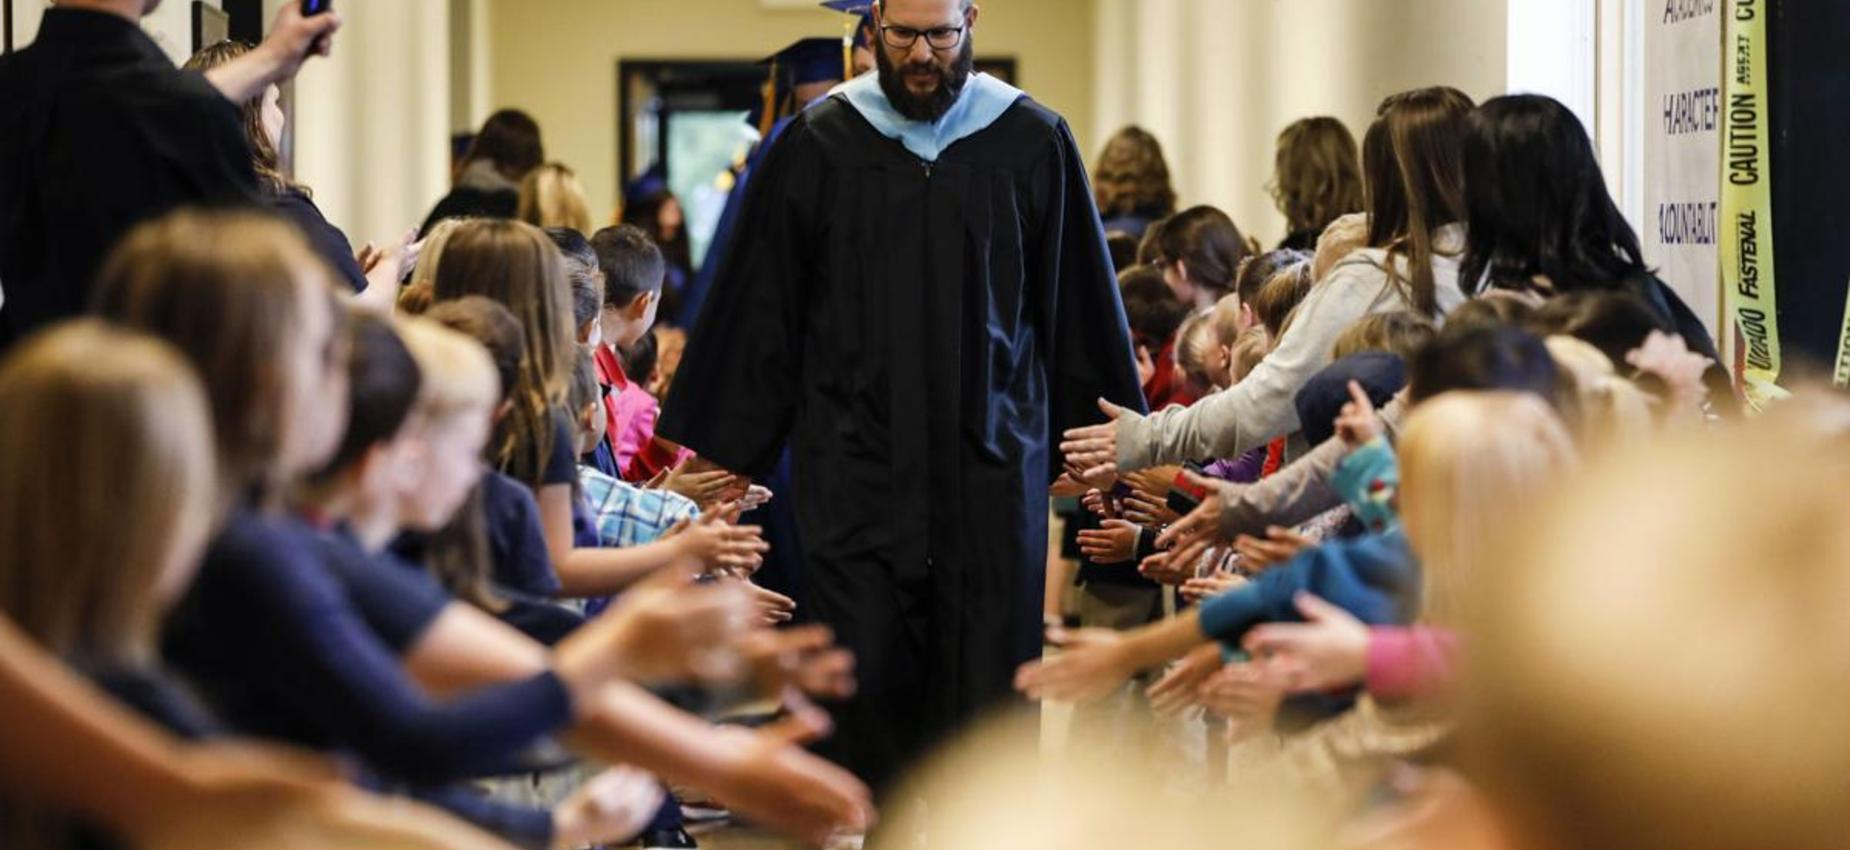 Mr. Collins leading 2019 graduates down the hallway to the commencement ceremony